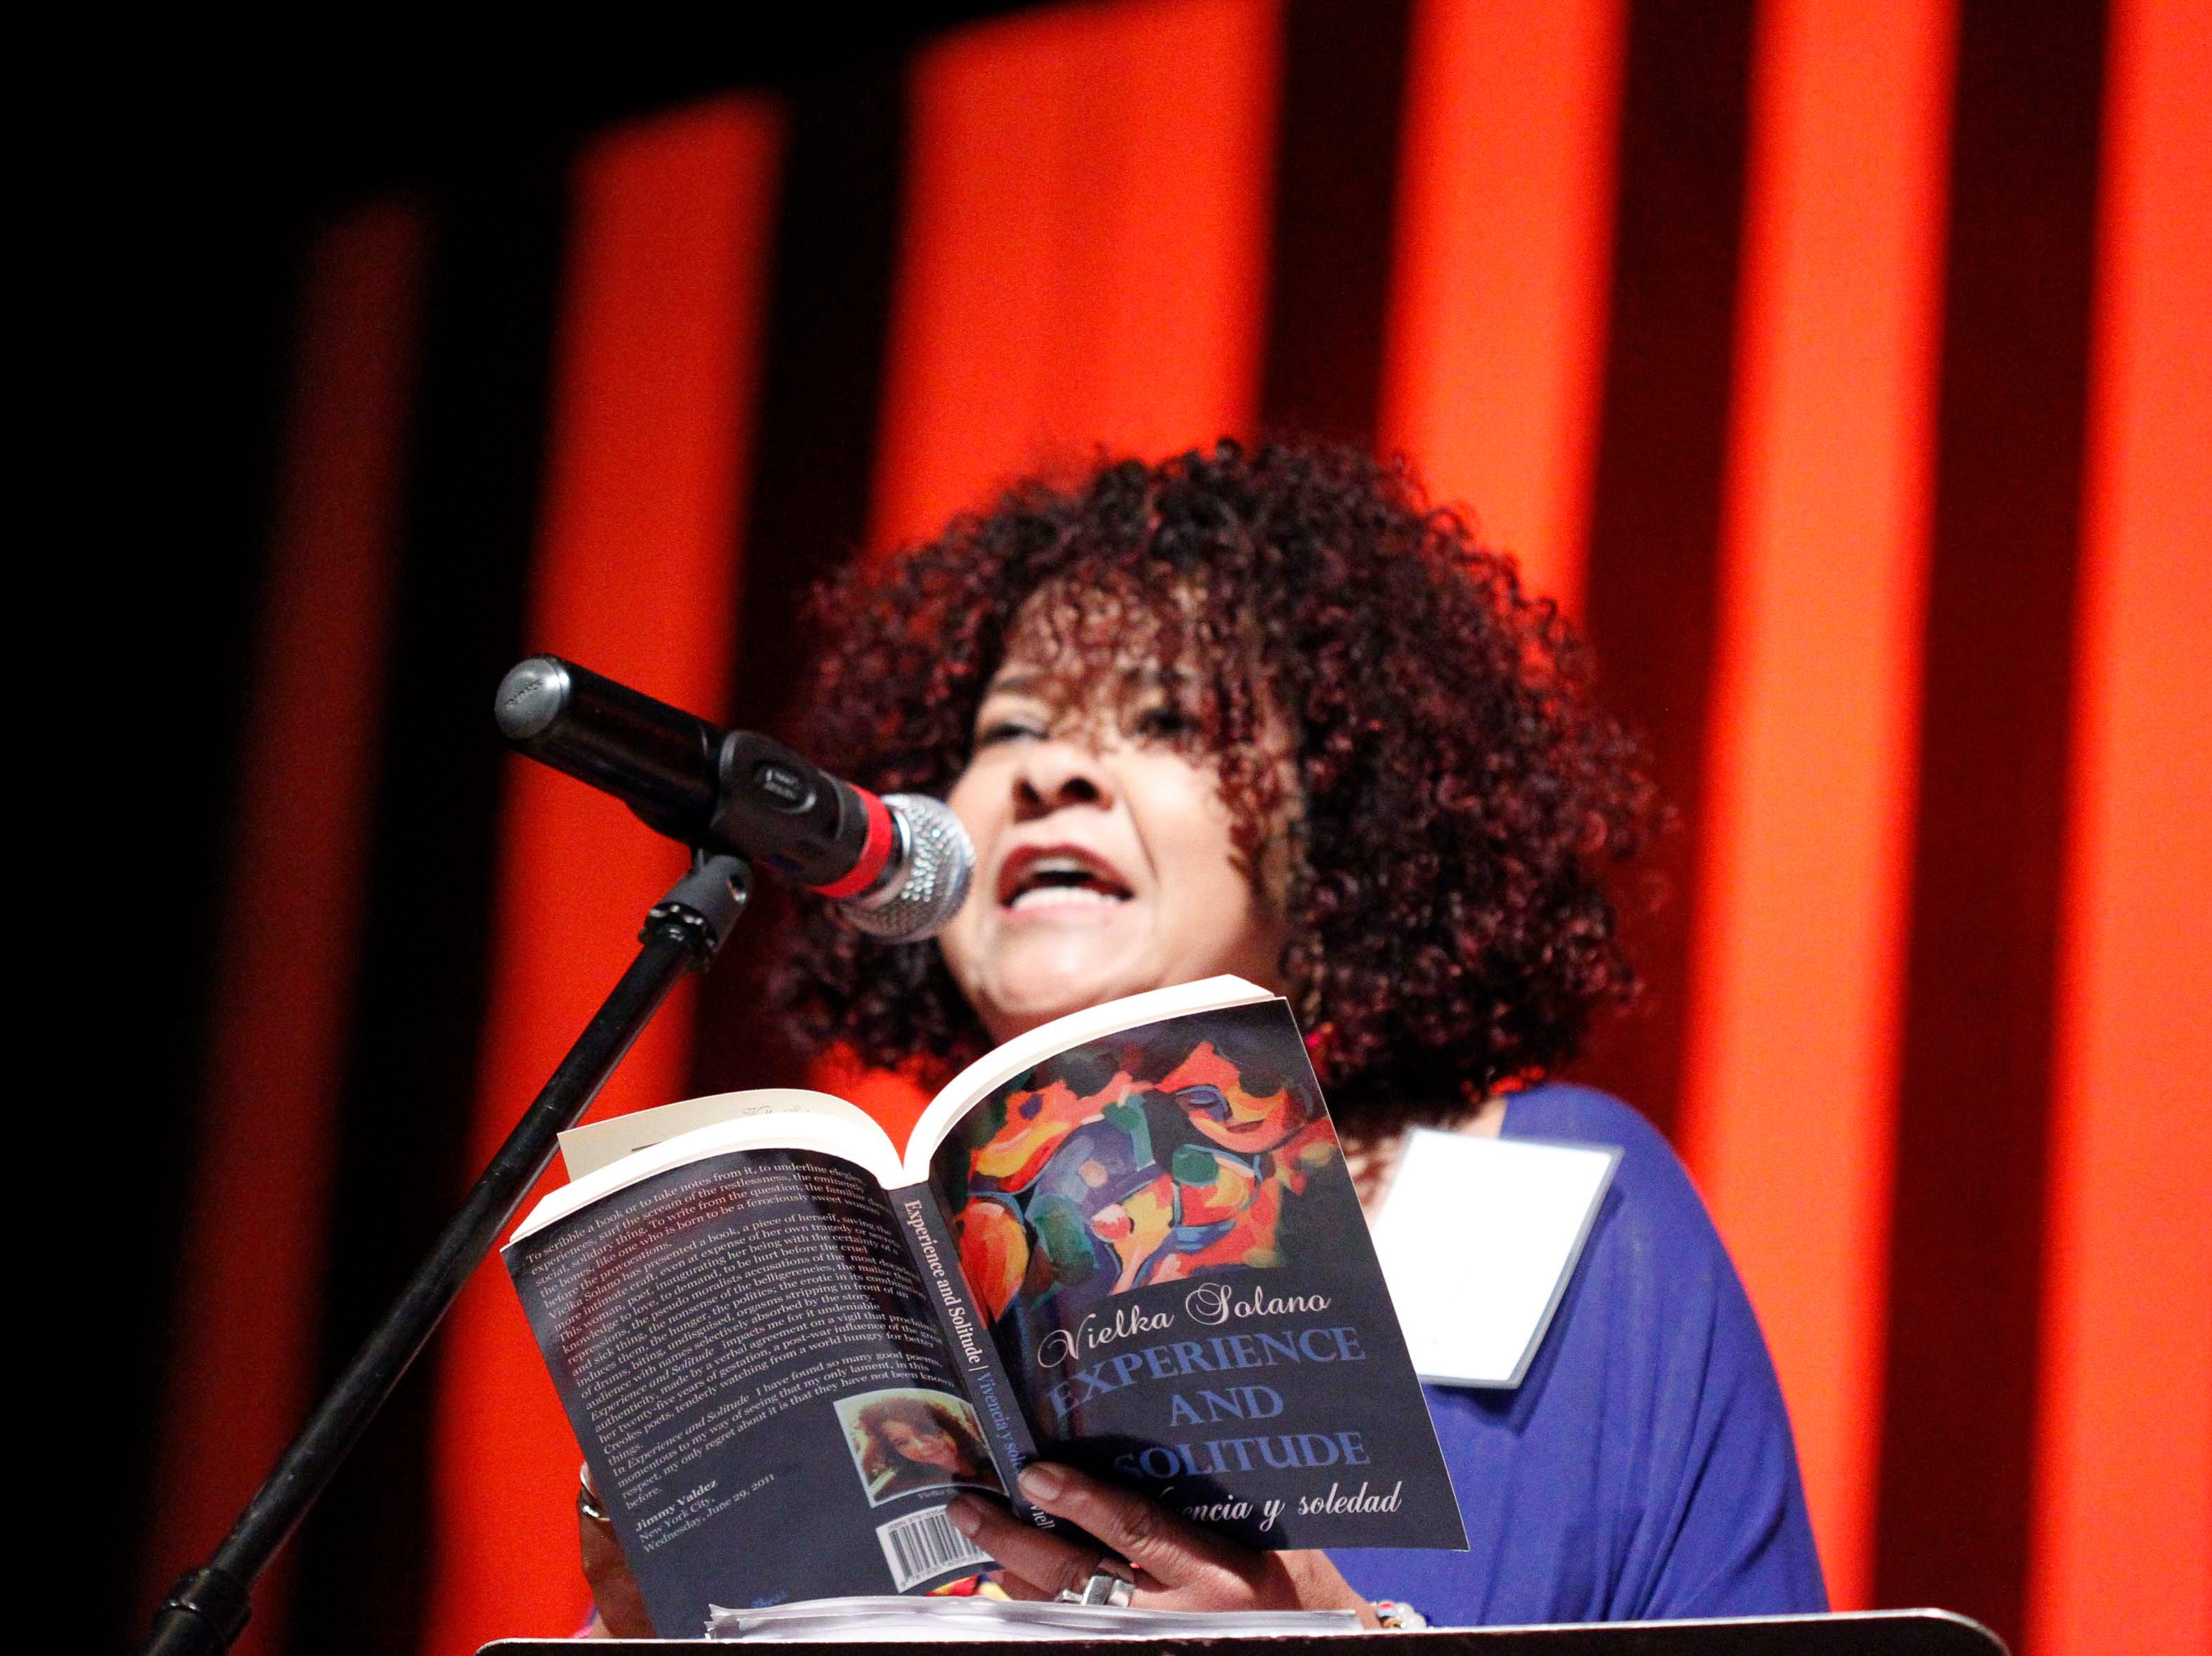 Author Vielka Solano performs a dramatic reading from her book during the12th annual Noche Bohemia at Sherwood Hall on Saturday, April 27, 2019 in Salinas, Calif.